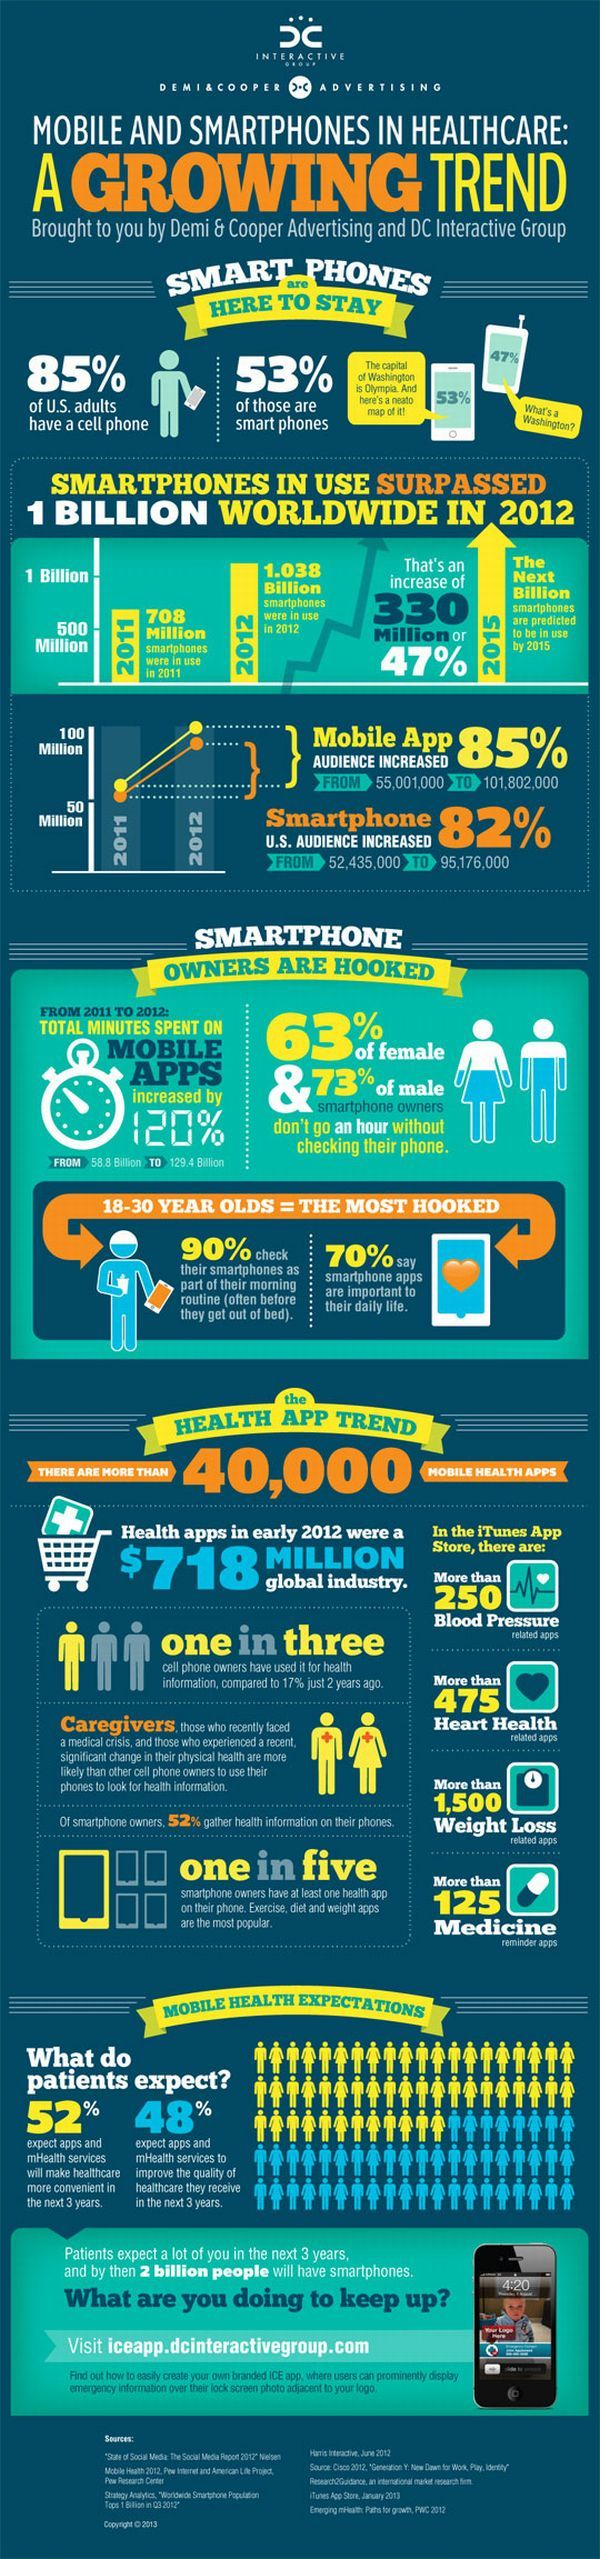 Infographic: Mobile & Smartphones in Healthcare #infographic #healthcare